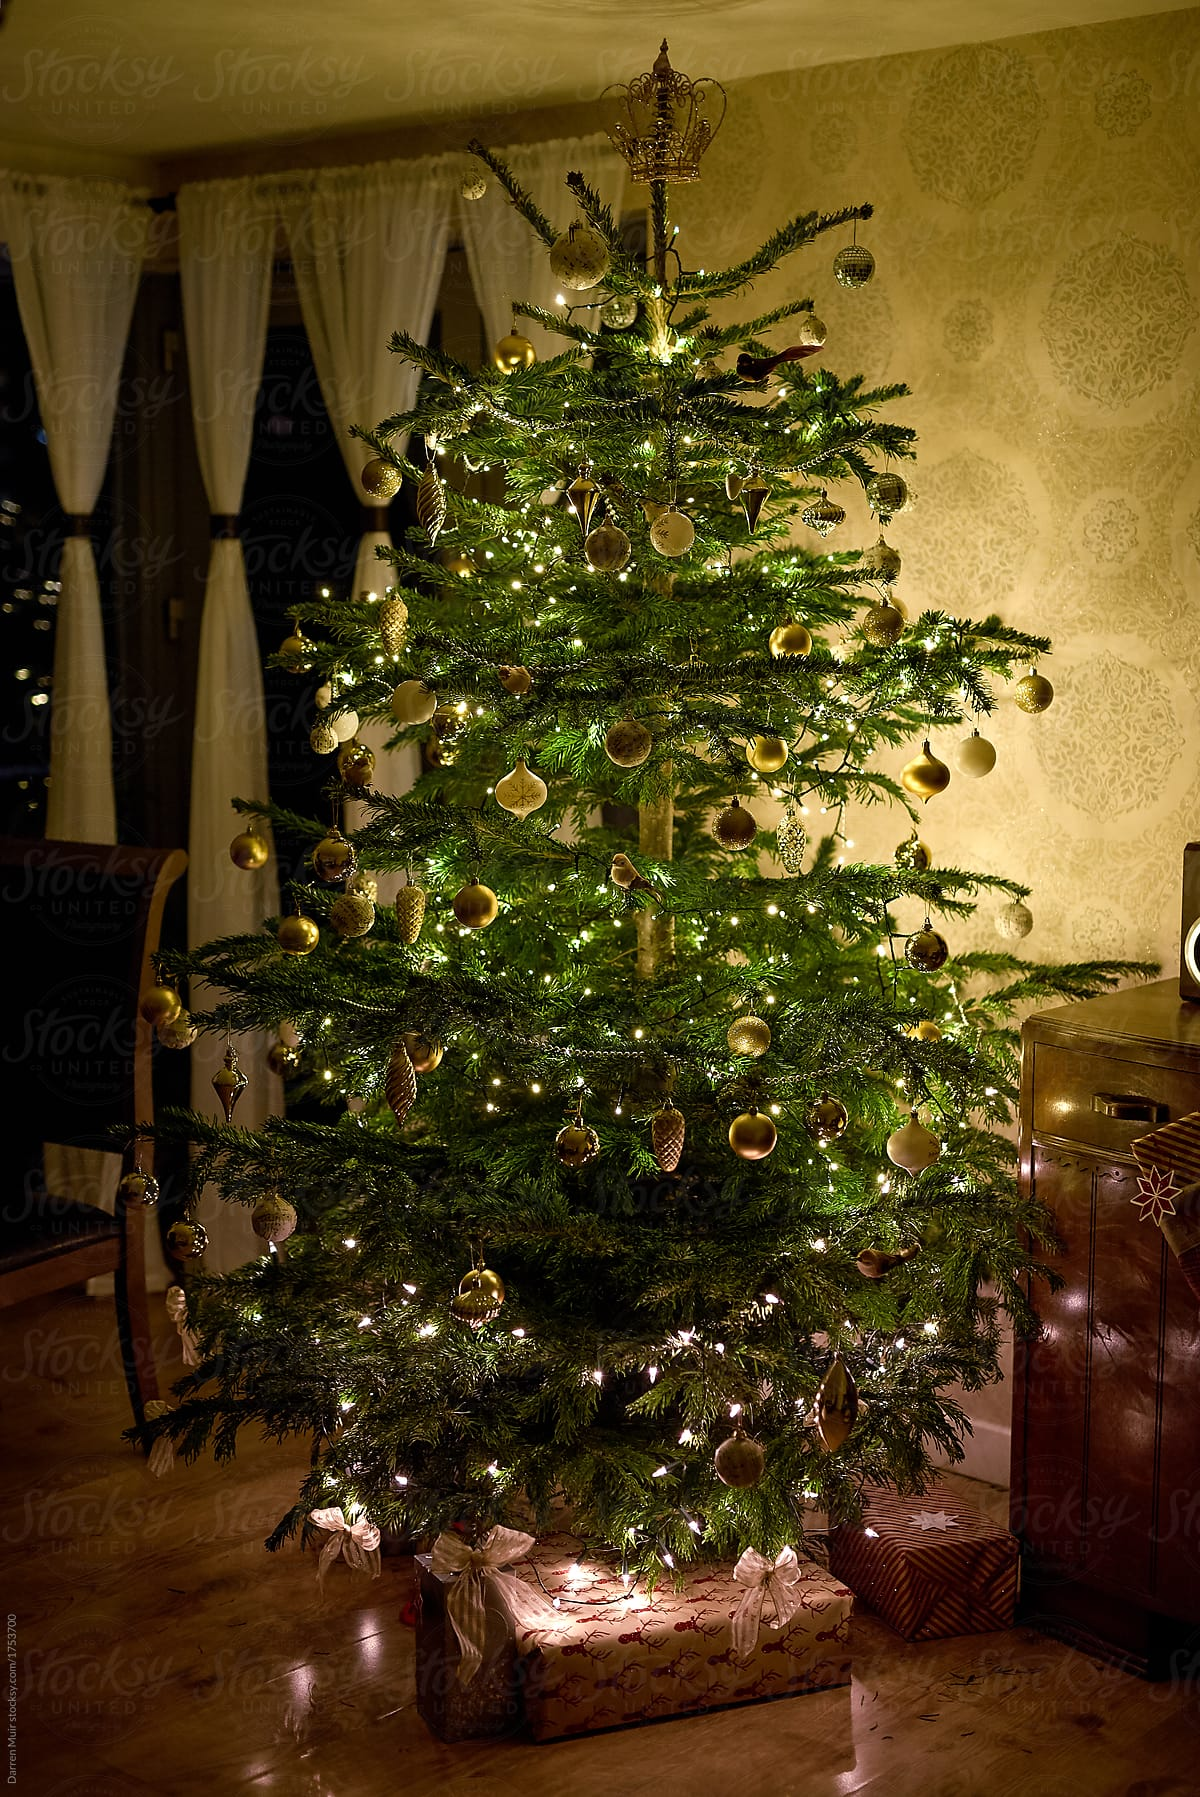 Real Christmas Tree.Traditional Real Christmas Tree In A Living Room At Night